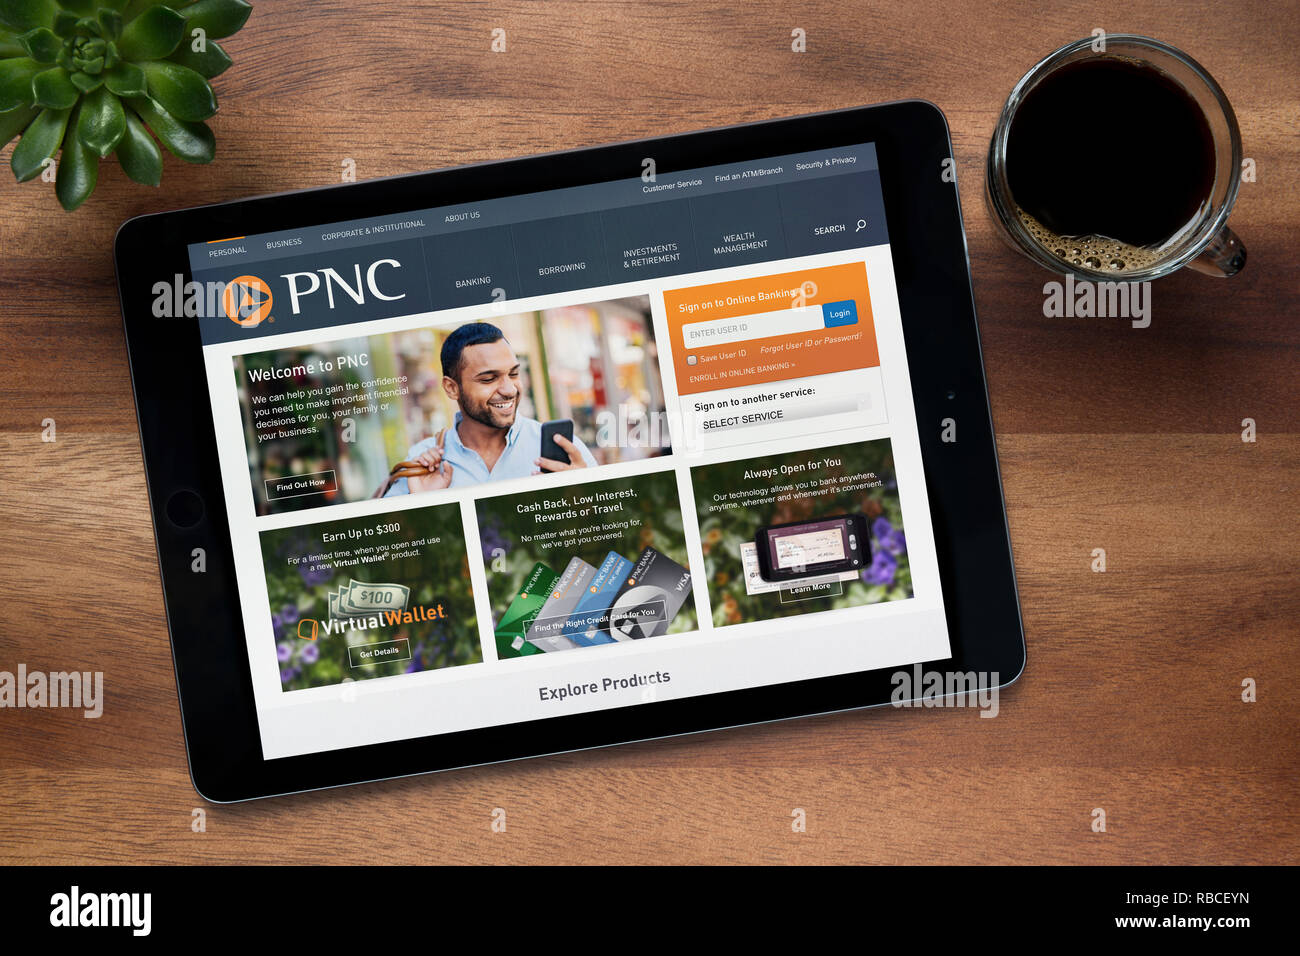 The website of PNC Financial Services is seen on an iPad tablet, on a wooden table along with an espresso coffee and a house plant (Editorial only) - Stock Image